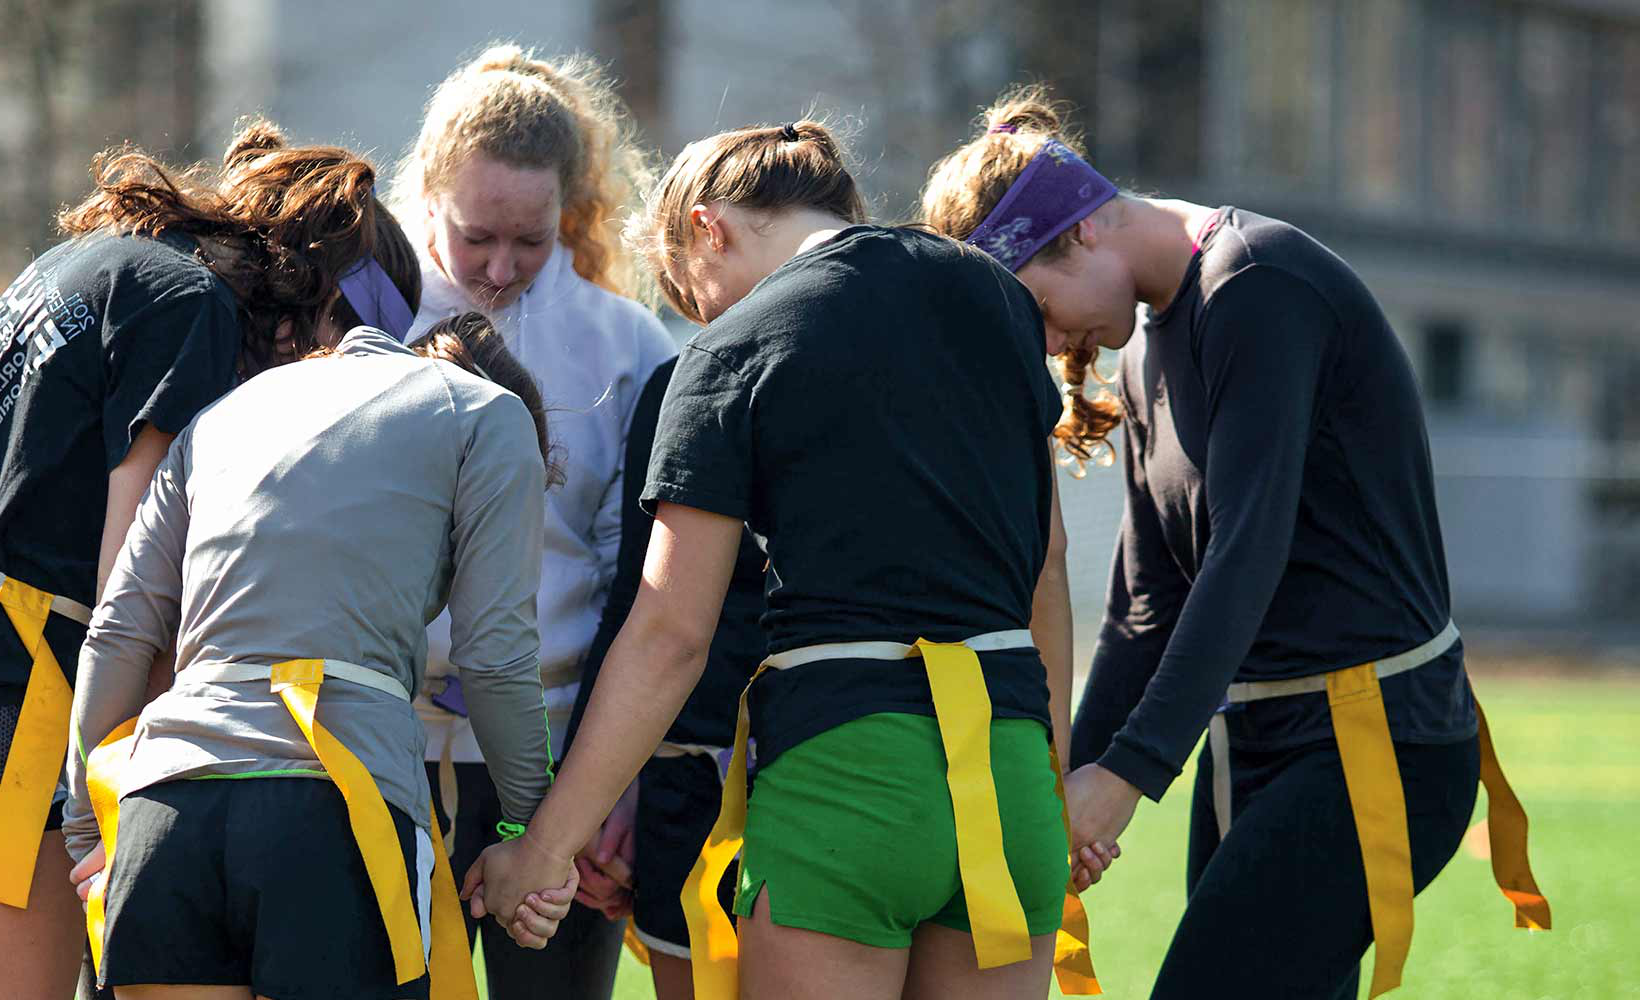 A prayer circle before an intramural match